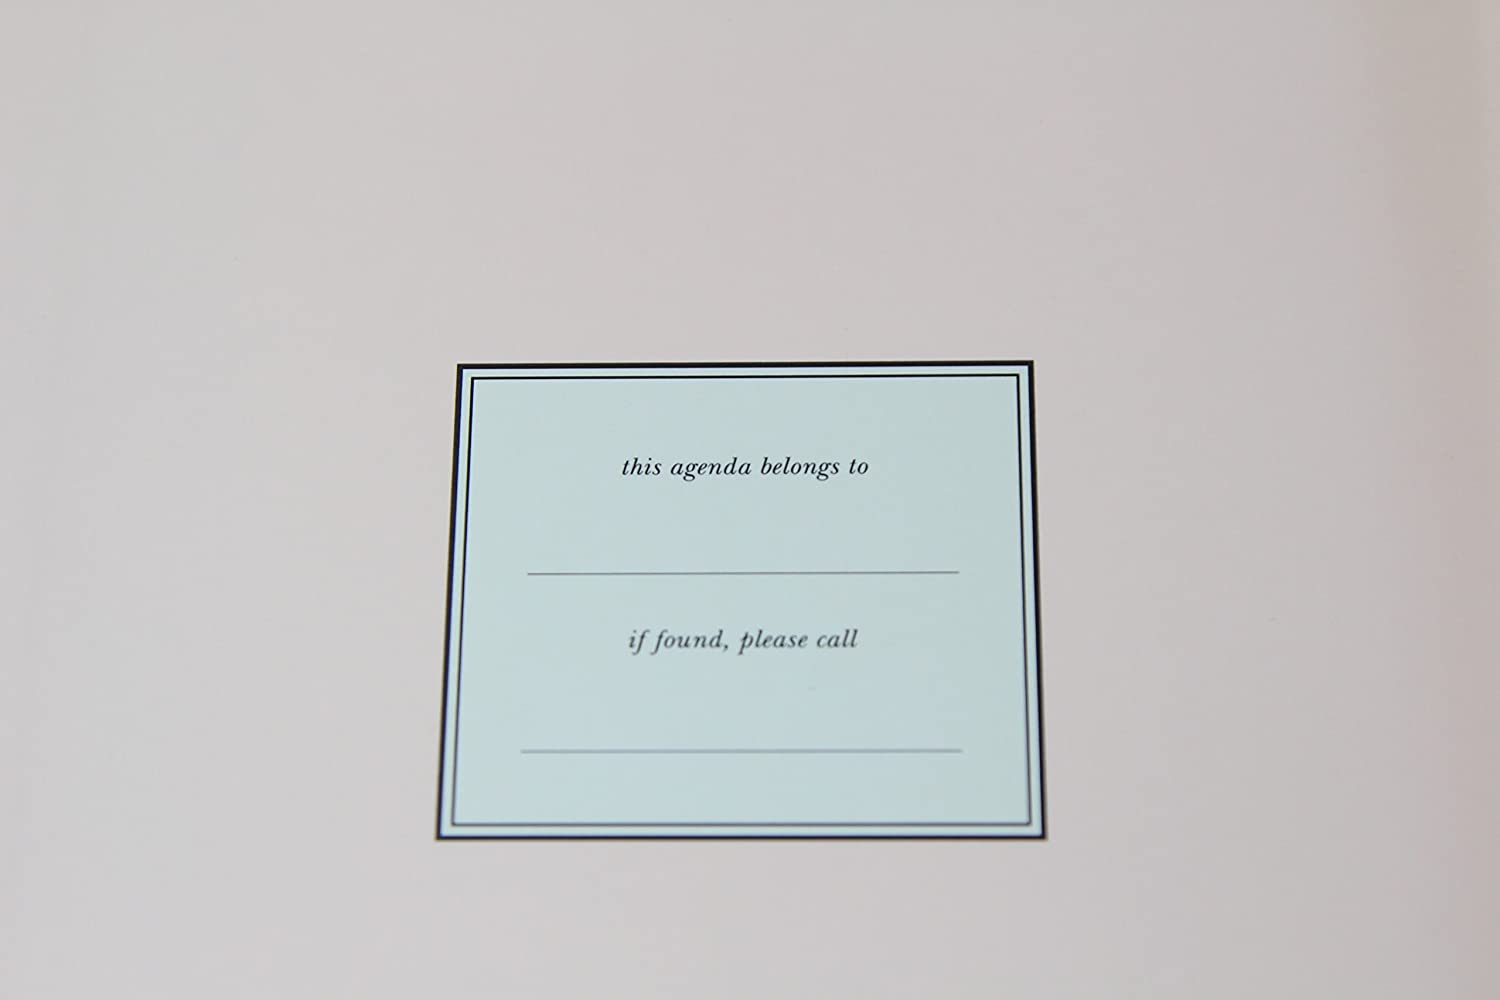 Amazon.com : Kate Spade Large Agenda - Gold Dots : Office ...